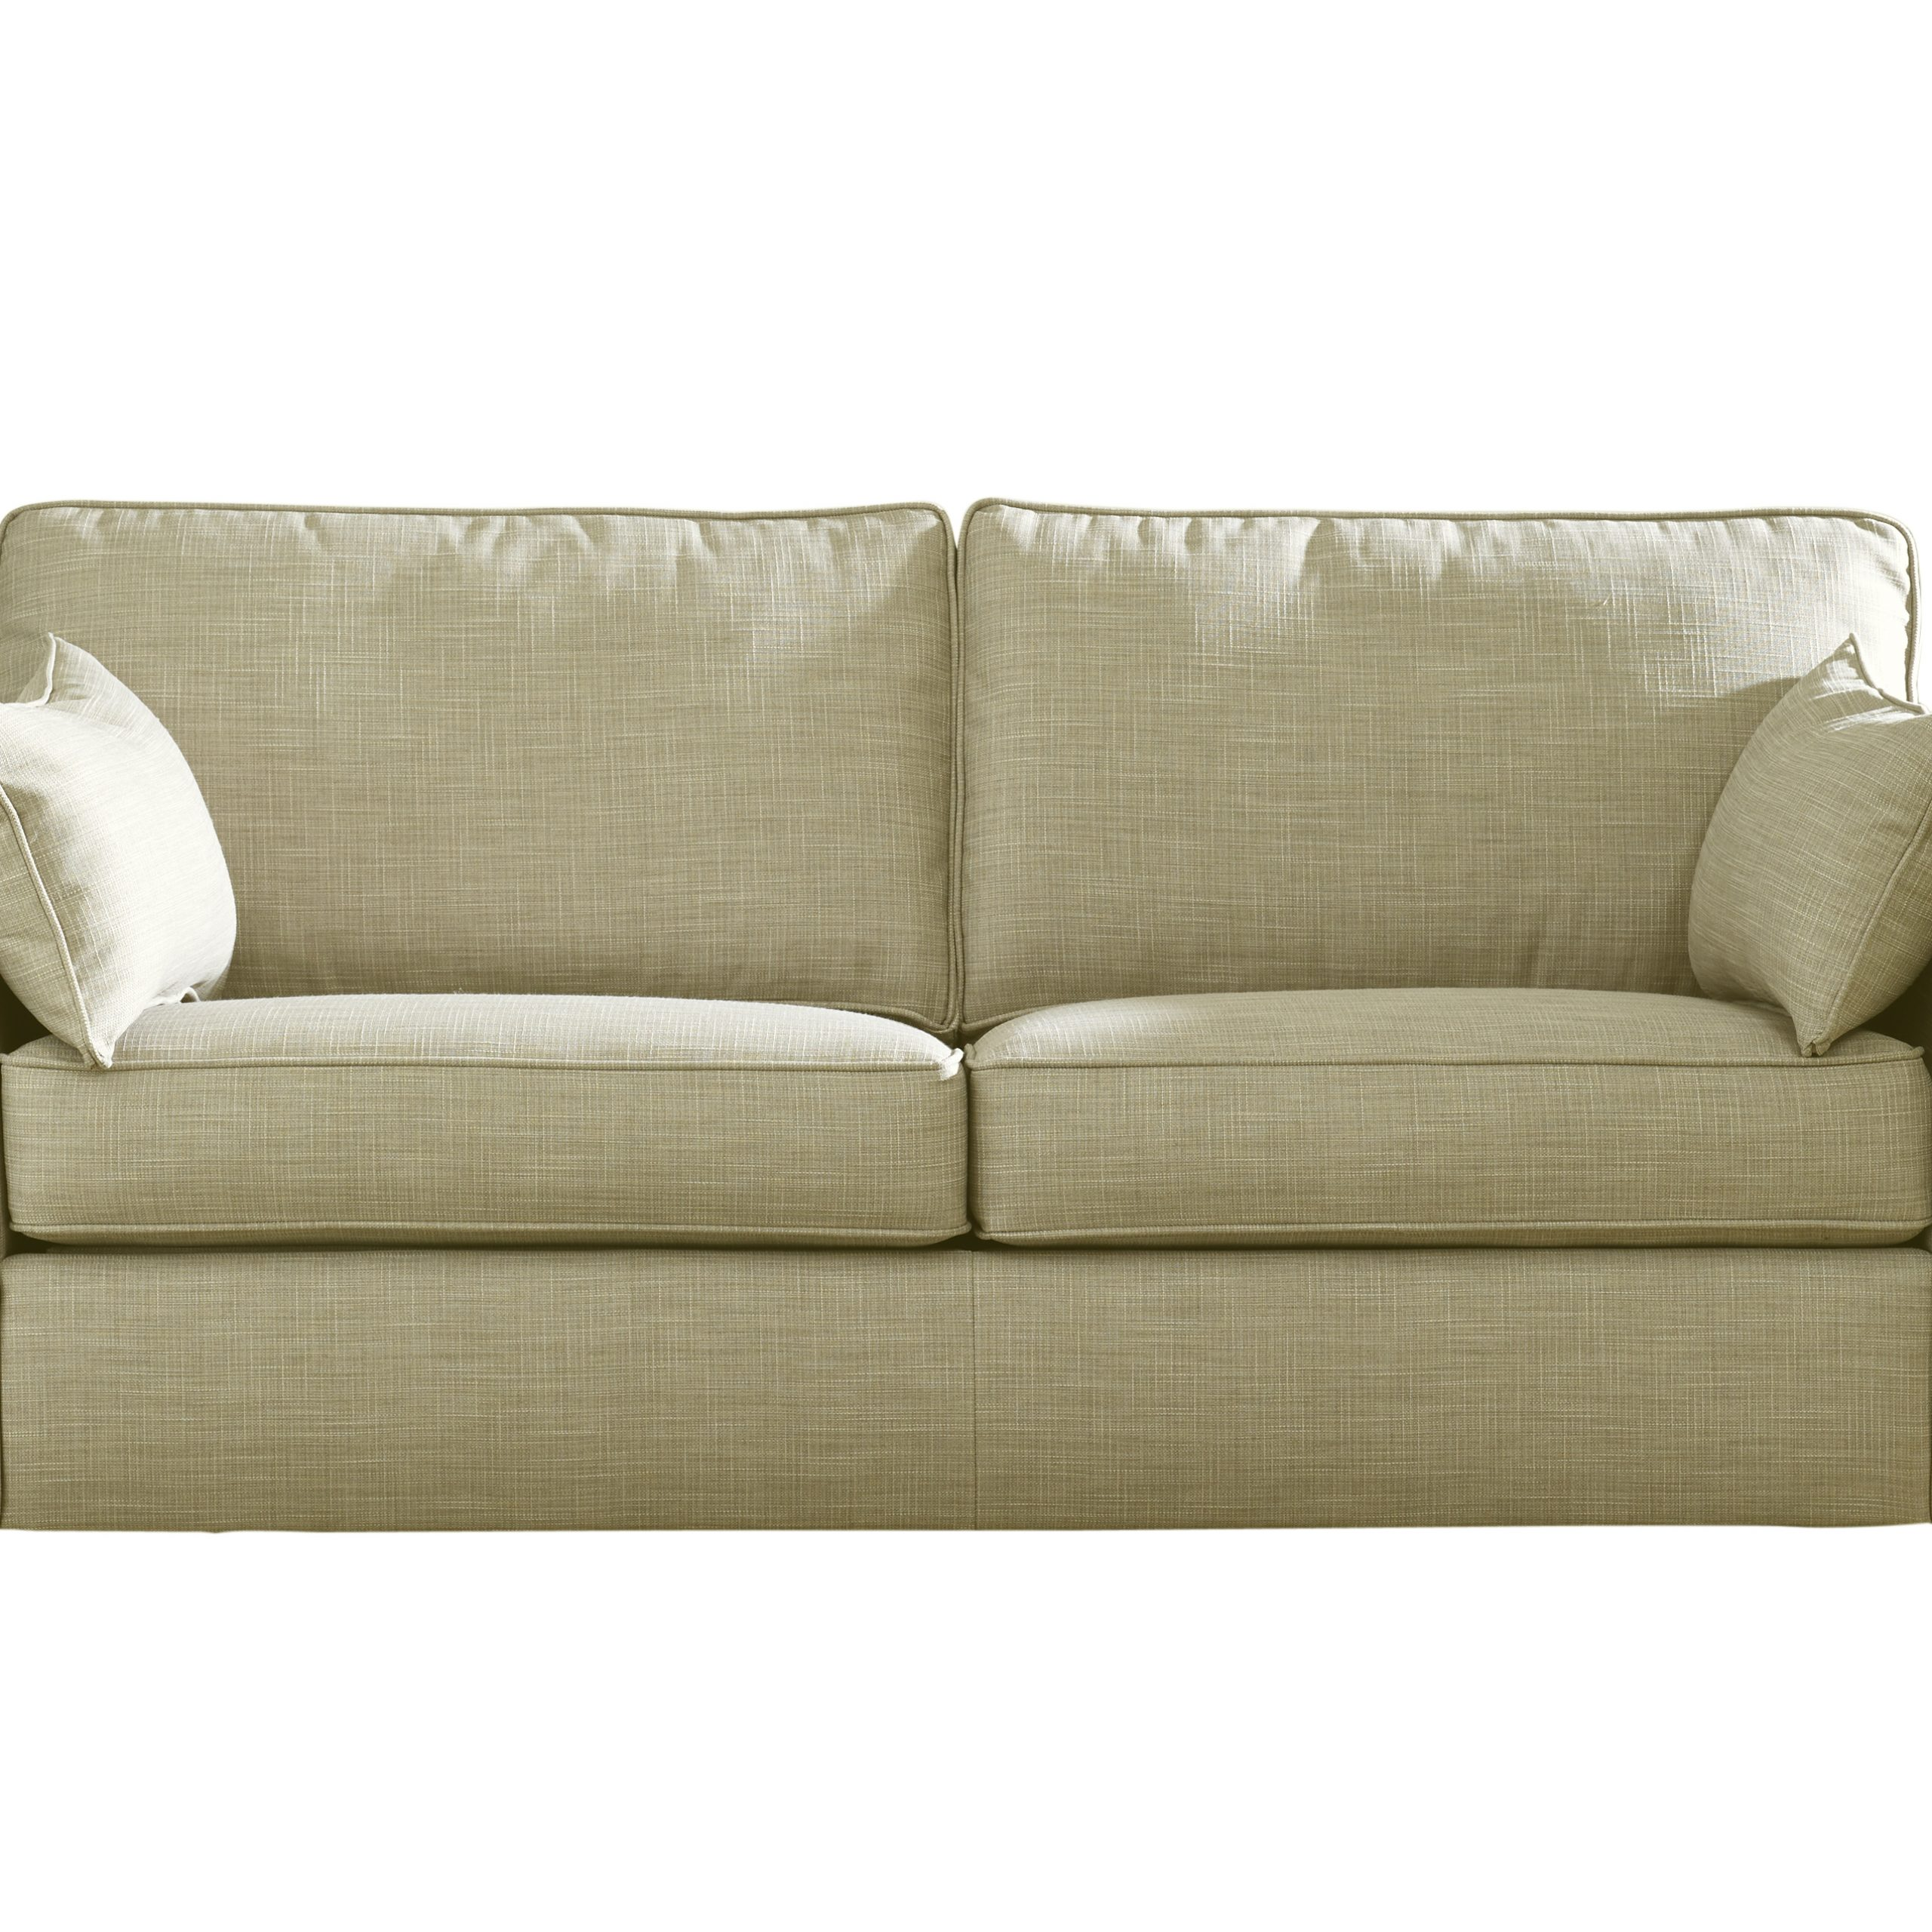 Montana Sofas Intended For Well Liked Montana Sofa Bed – Comfort And Slouch (View 4 of 15)